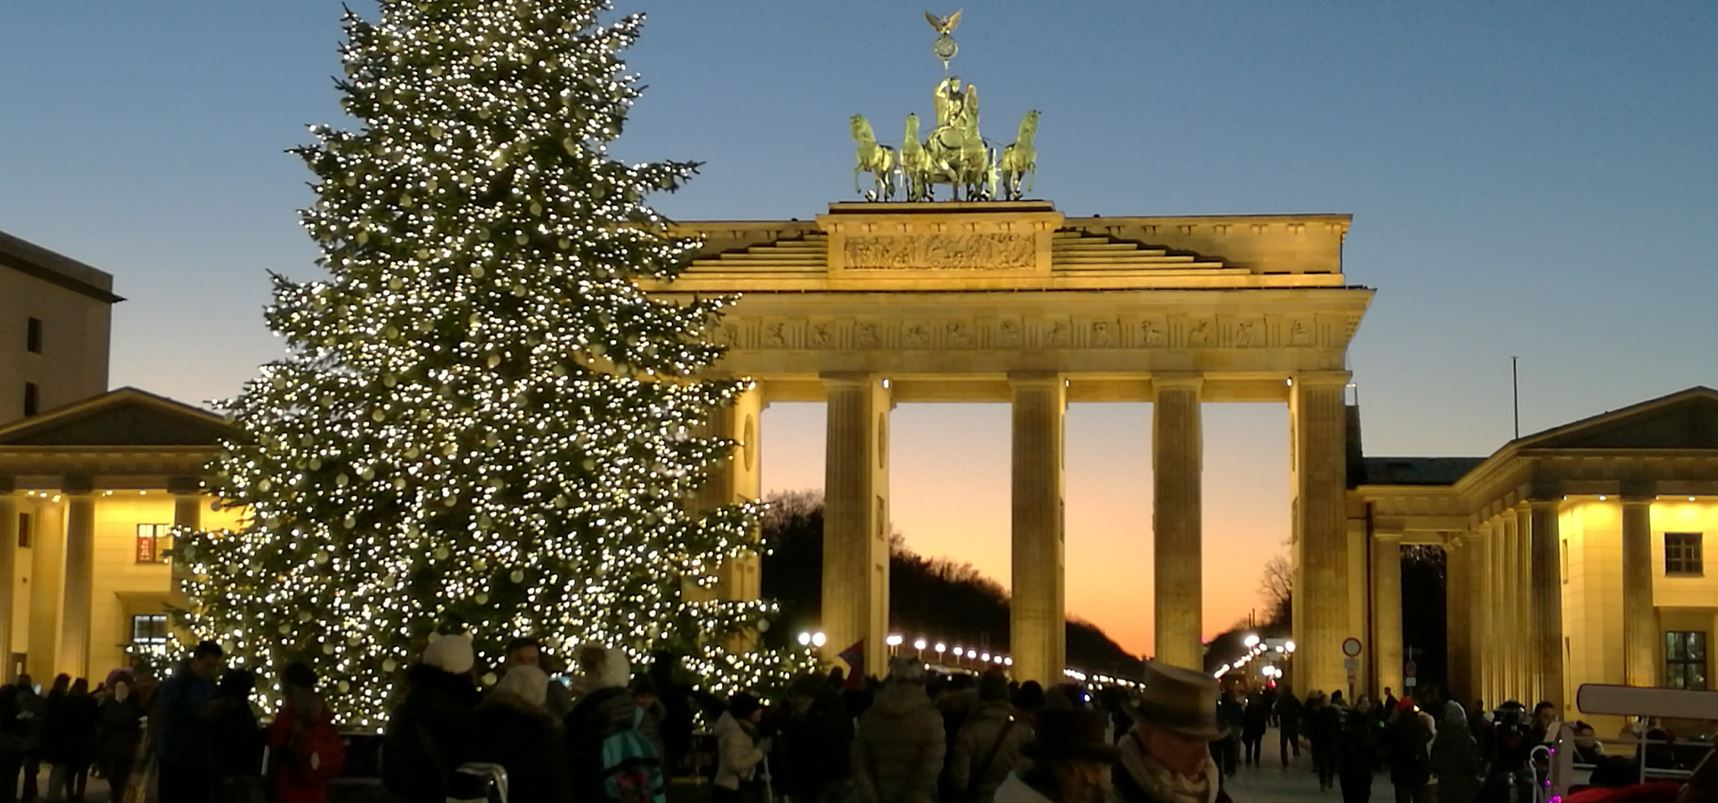 private tour guide berlin and private walking tours berlin